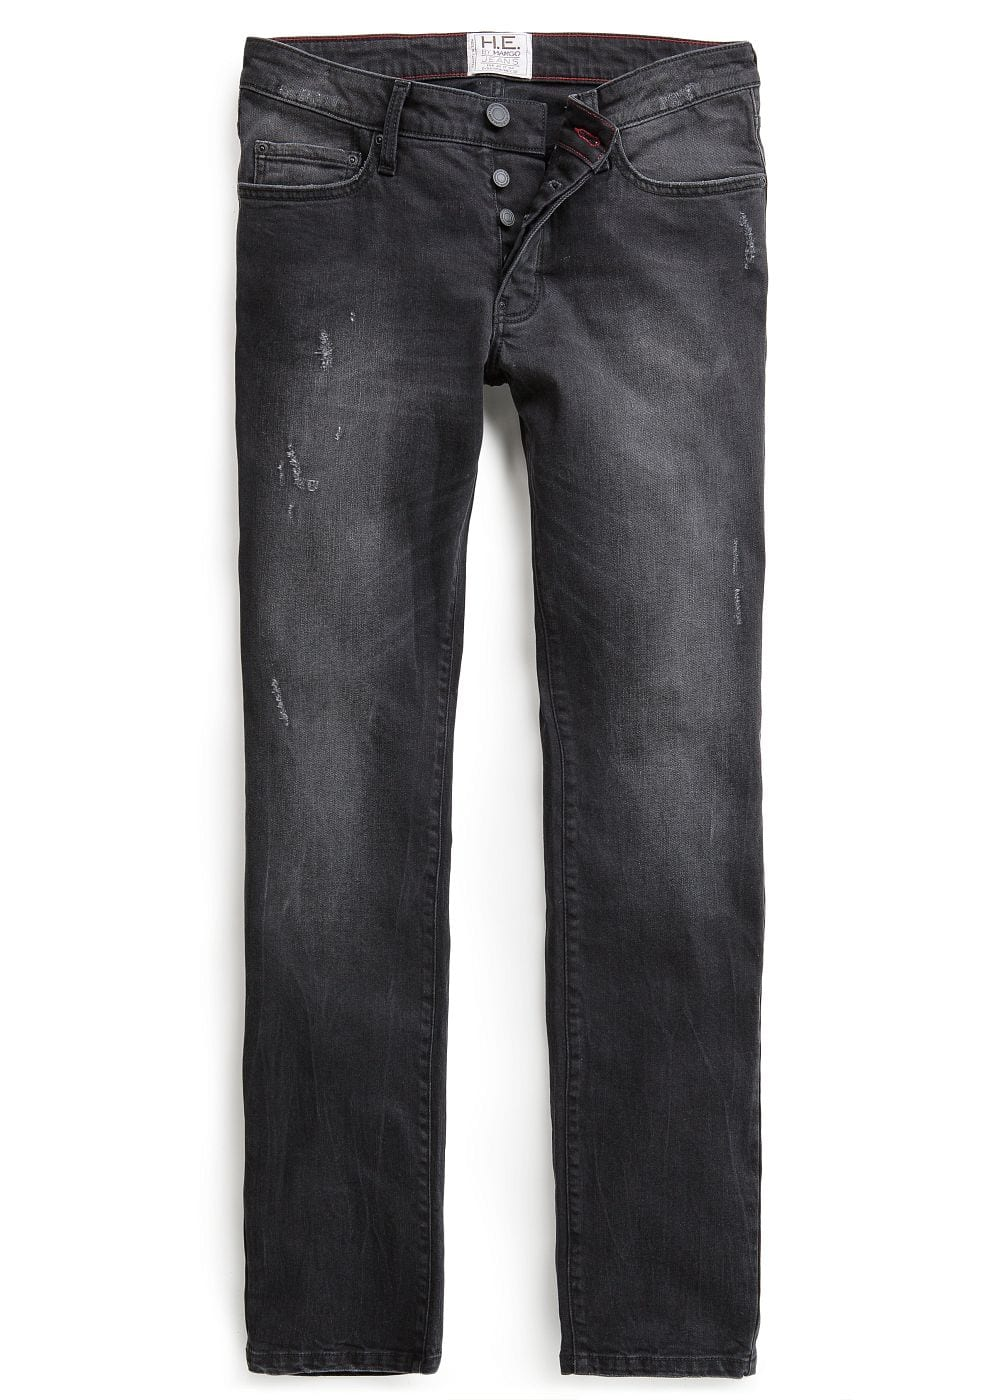 Jeans tim slim-fit negros | MANGO MAN